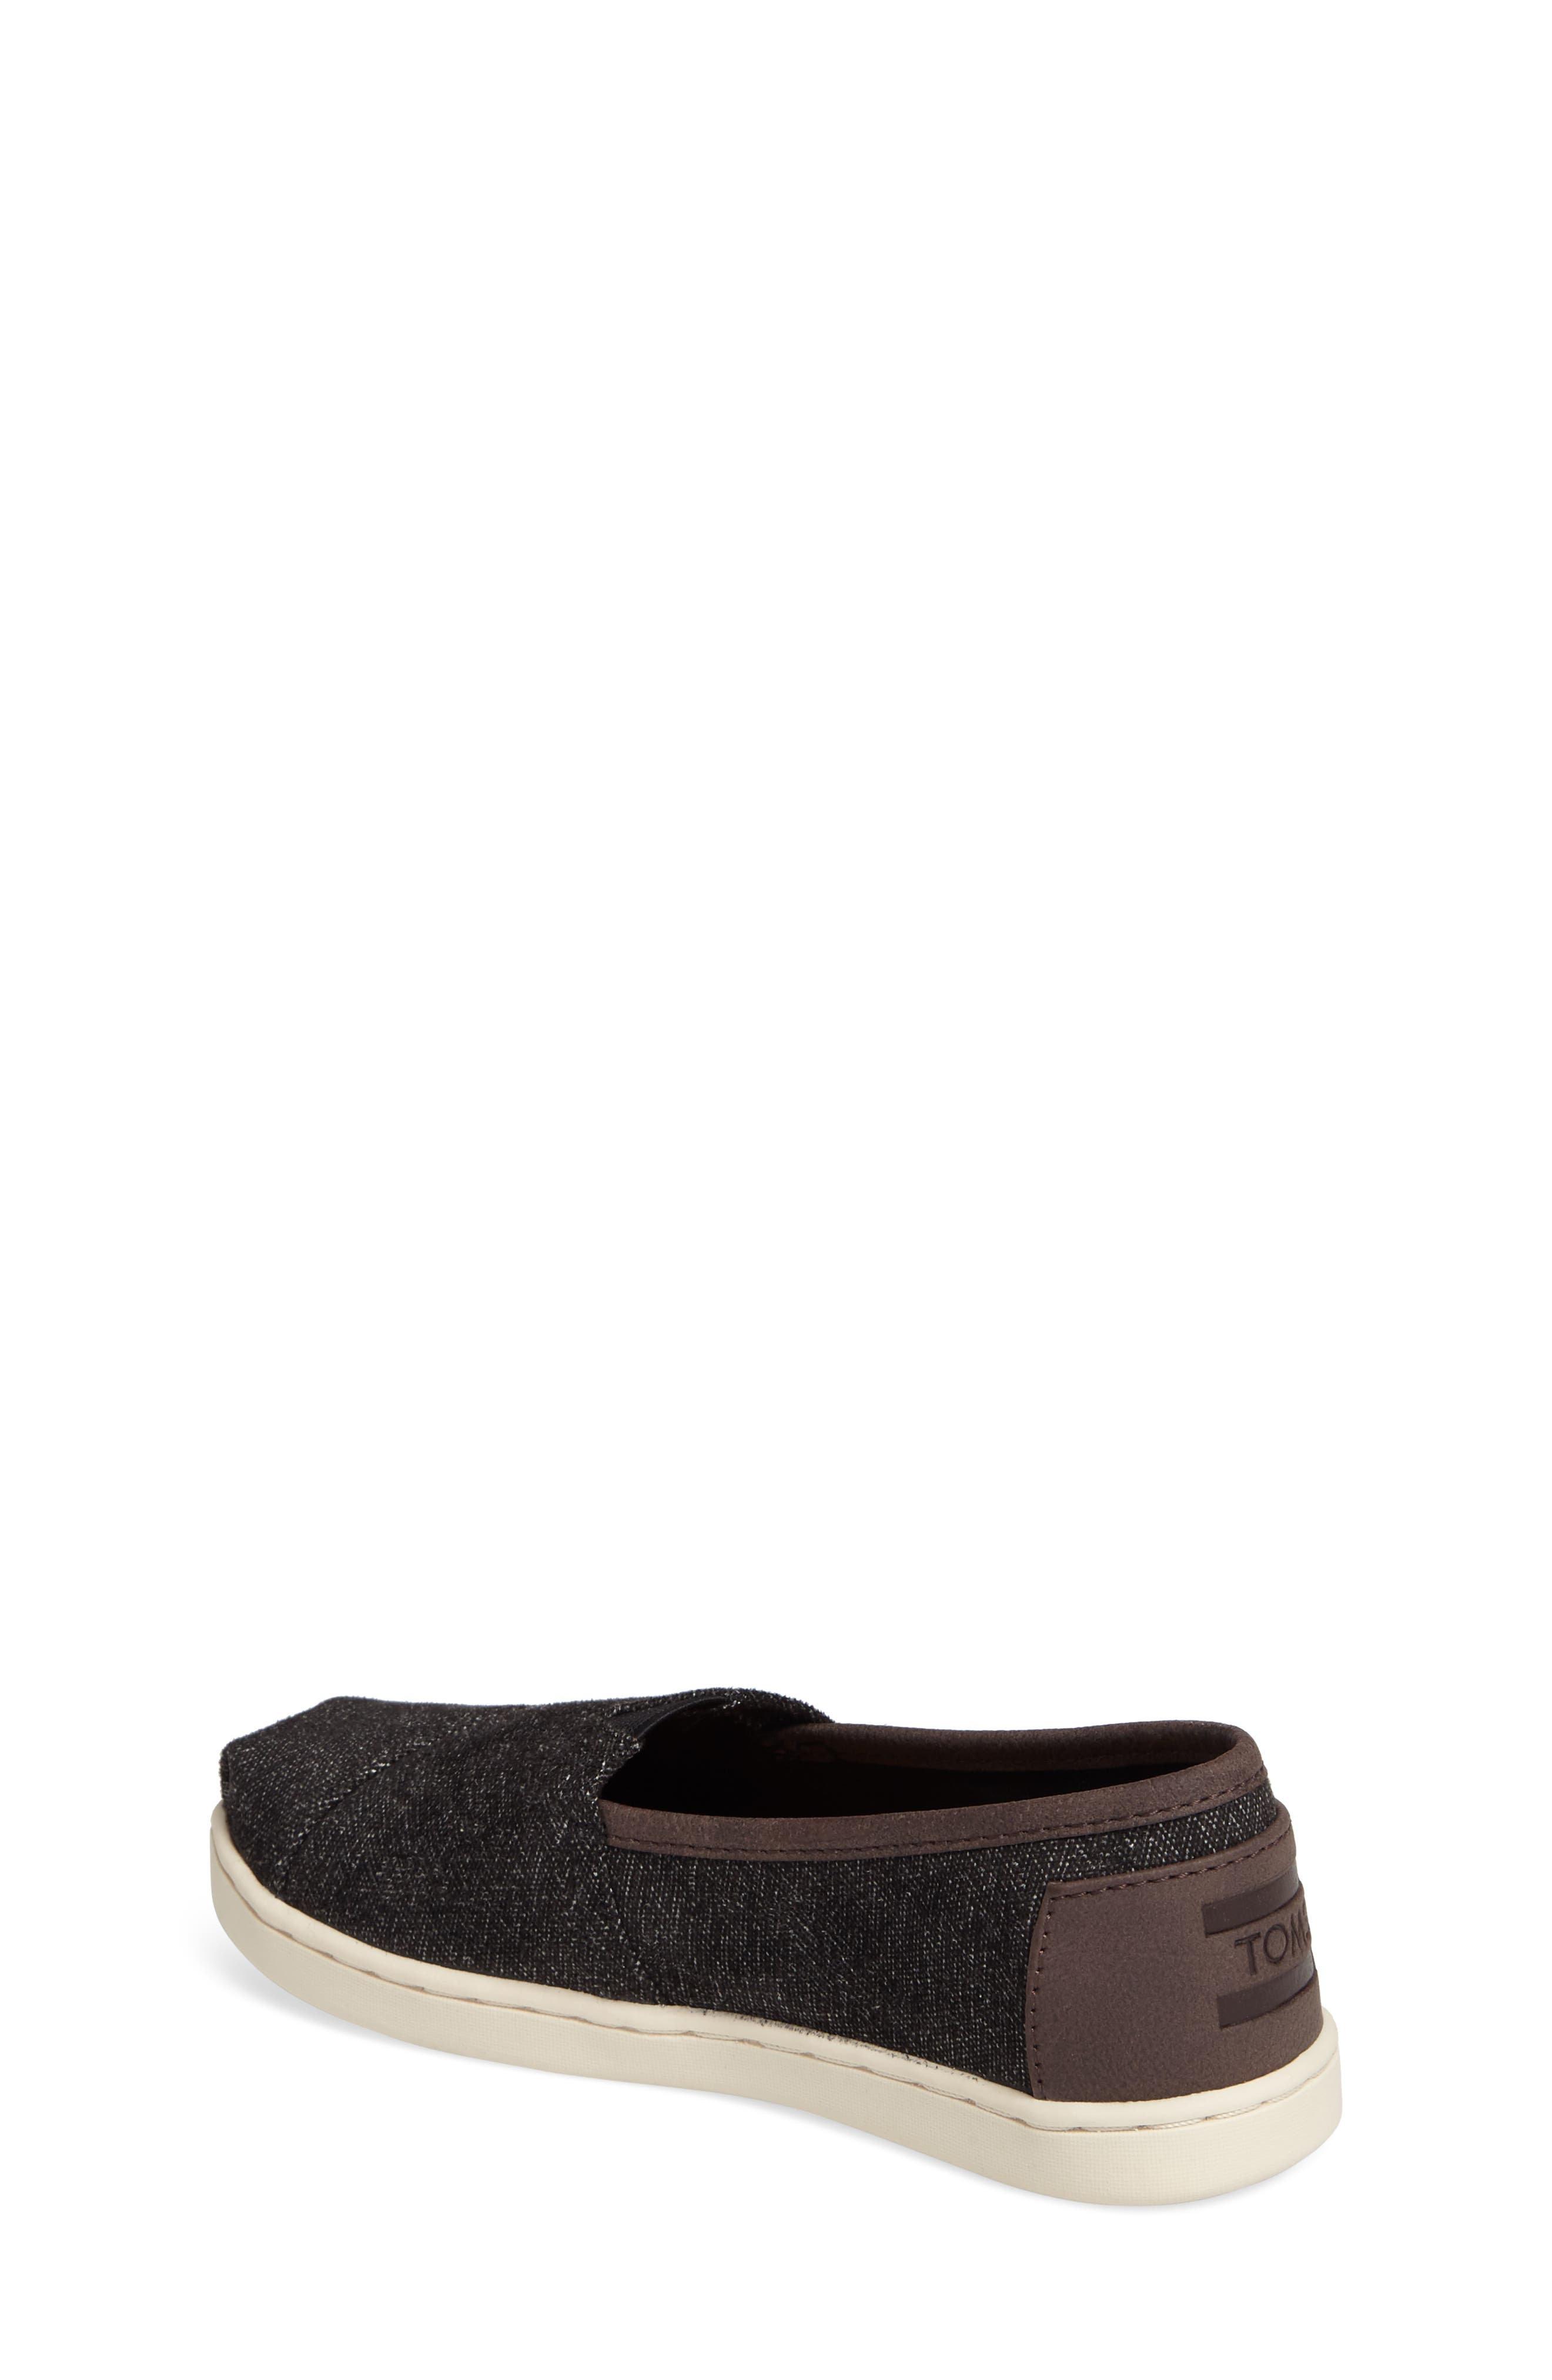 Alternate Image 2  - TOMS Herringbone Slip-On Sneaker (Toddler, Little Kid & Big Kid)